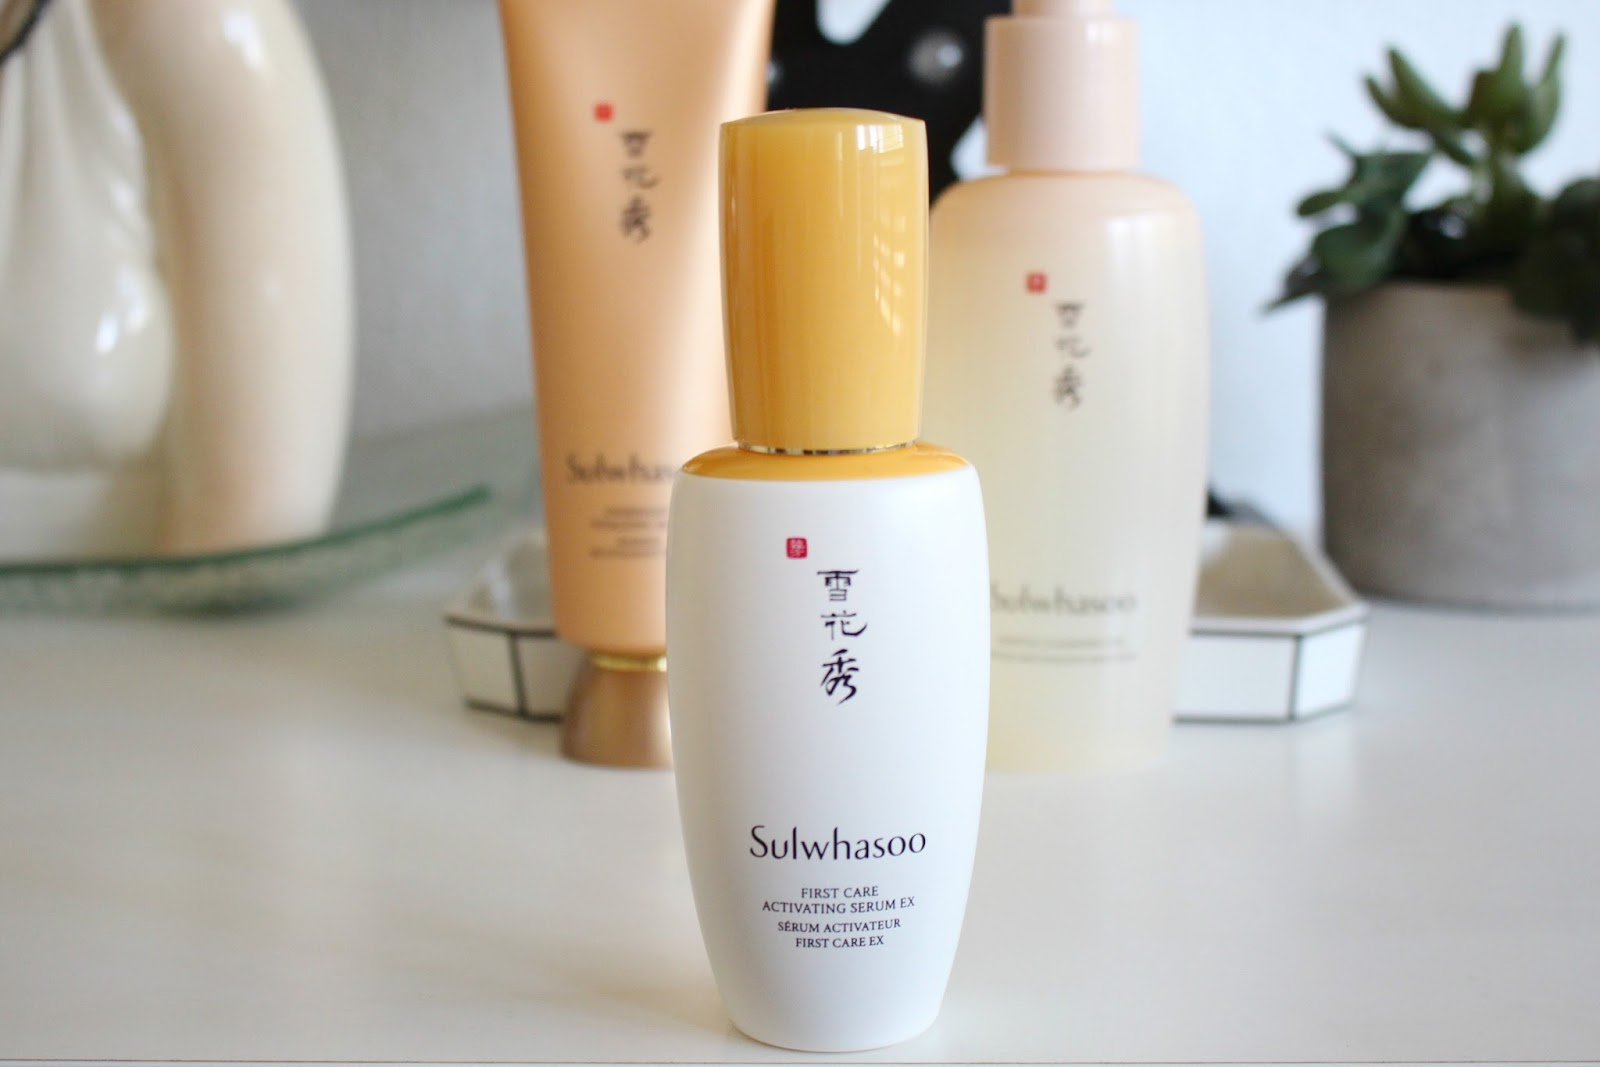 sulwhasoo gentle cleansing oil, sulwhasoo overnight vitalizing mask, sulwahsoo first care activating serum ex